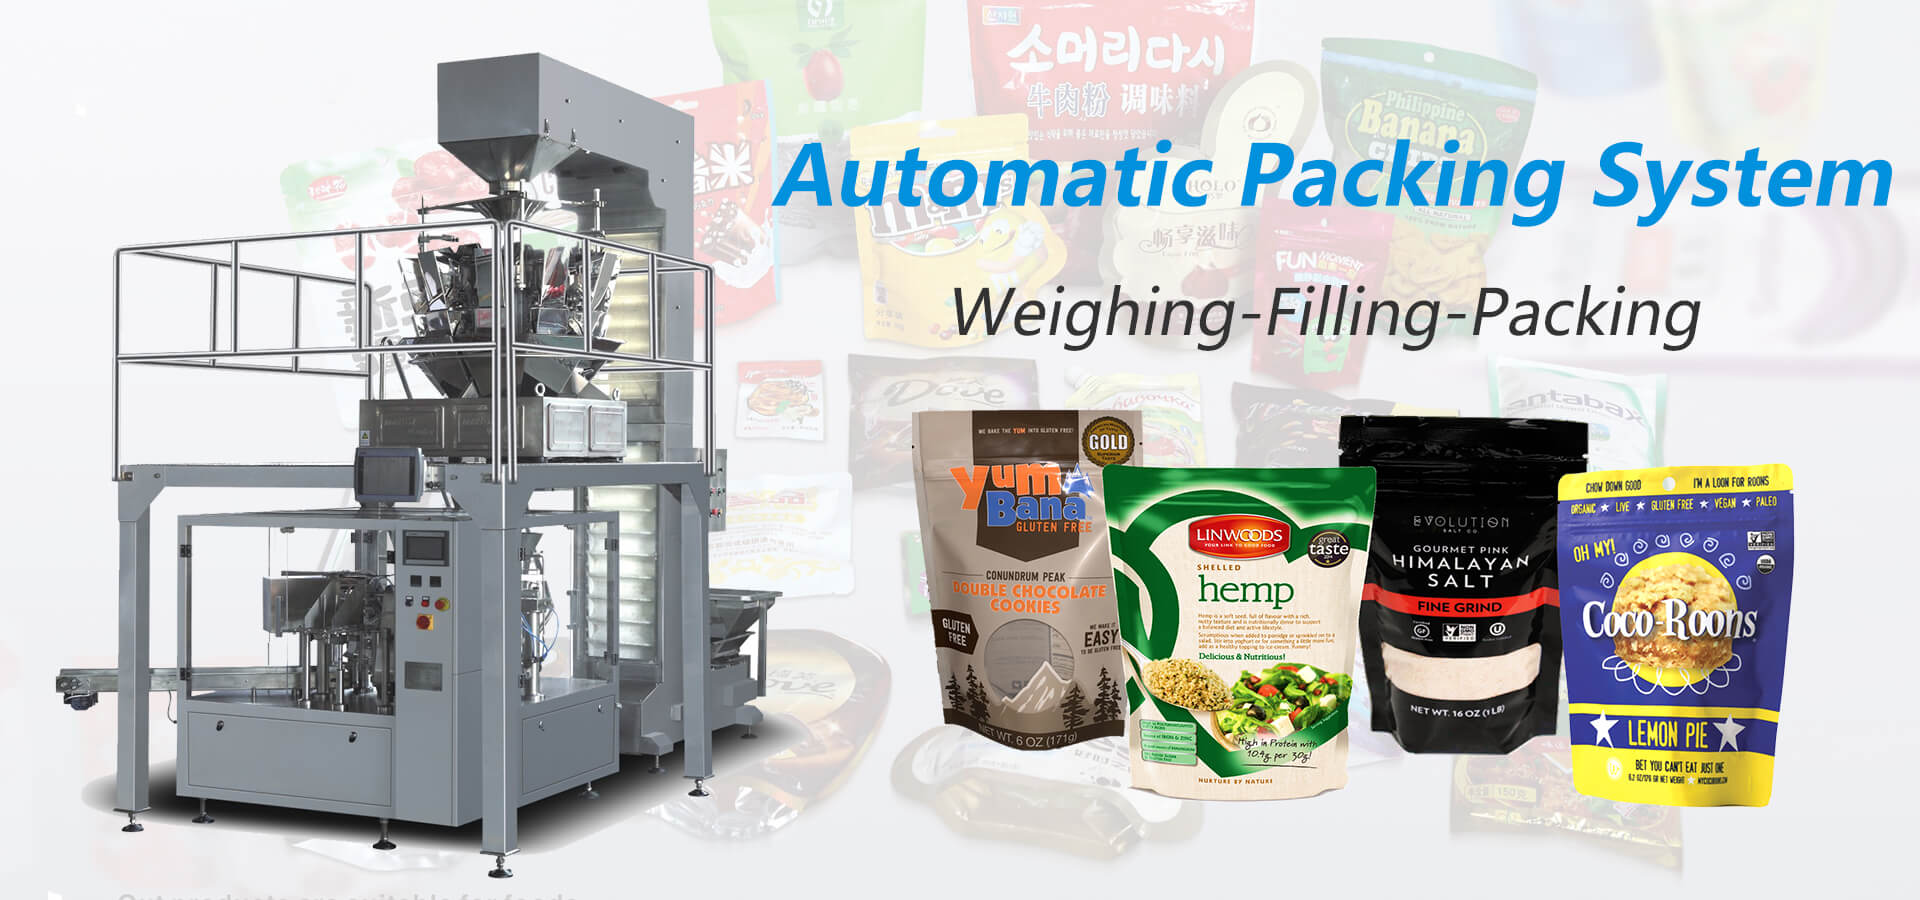 Rotary Packing Machine | Doypack Packing Machine | Premade Pouch Filling And Sealing Machine - Manufacturers in China